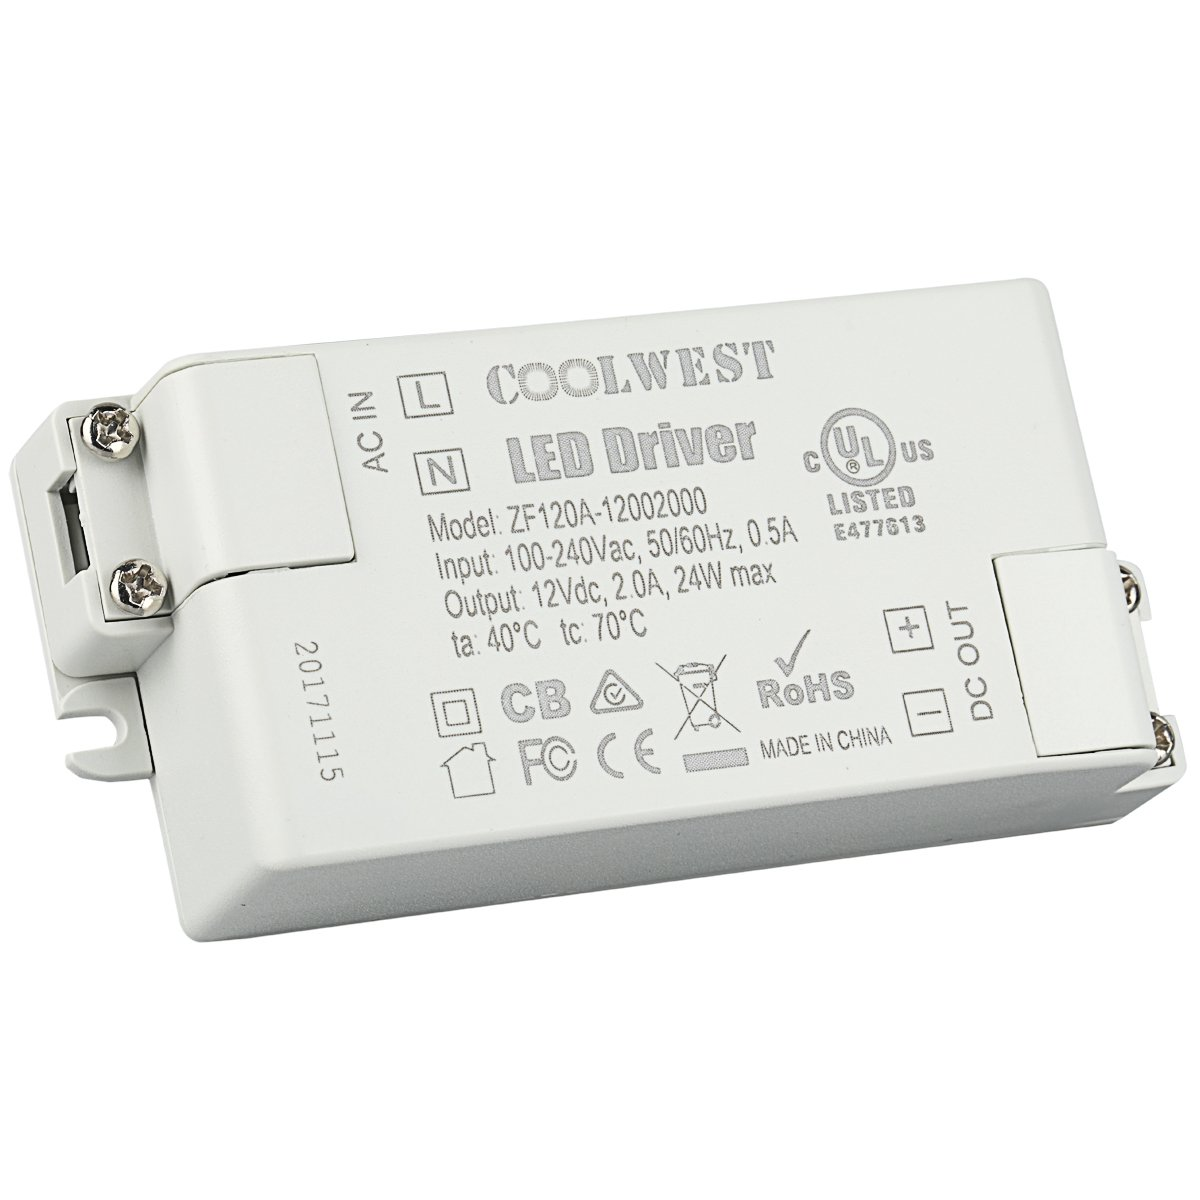 COOLWEST 24W 12V Power Supply Driver Transformer for LED Flexible Strip Light G4 MR16 Bulbs clz0111